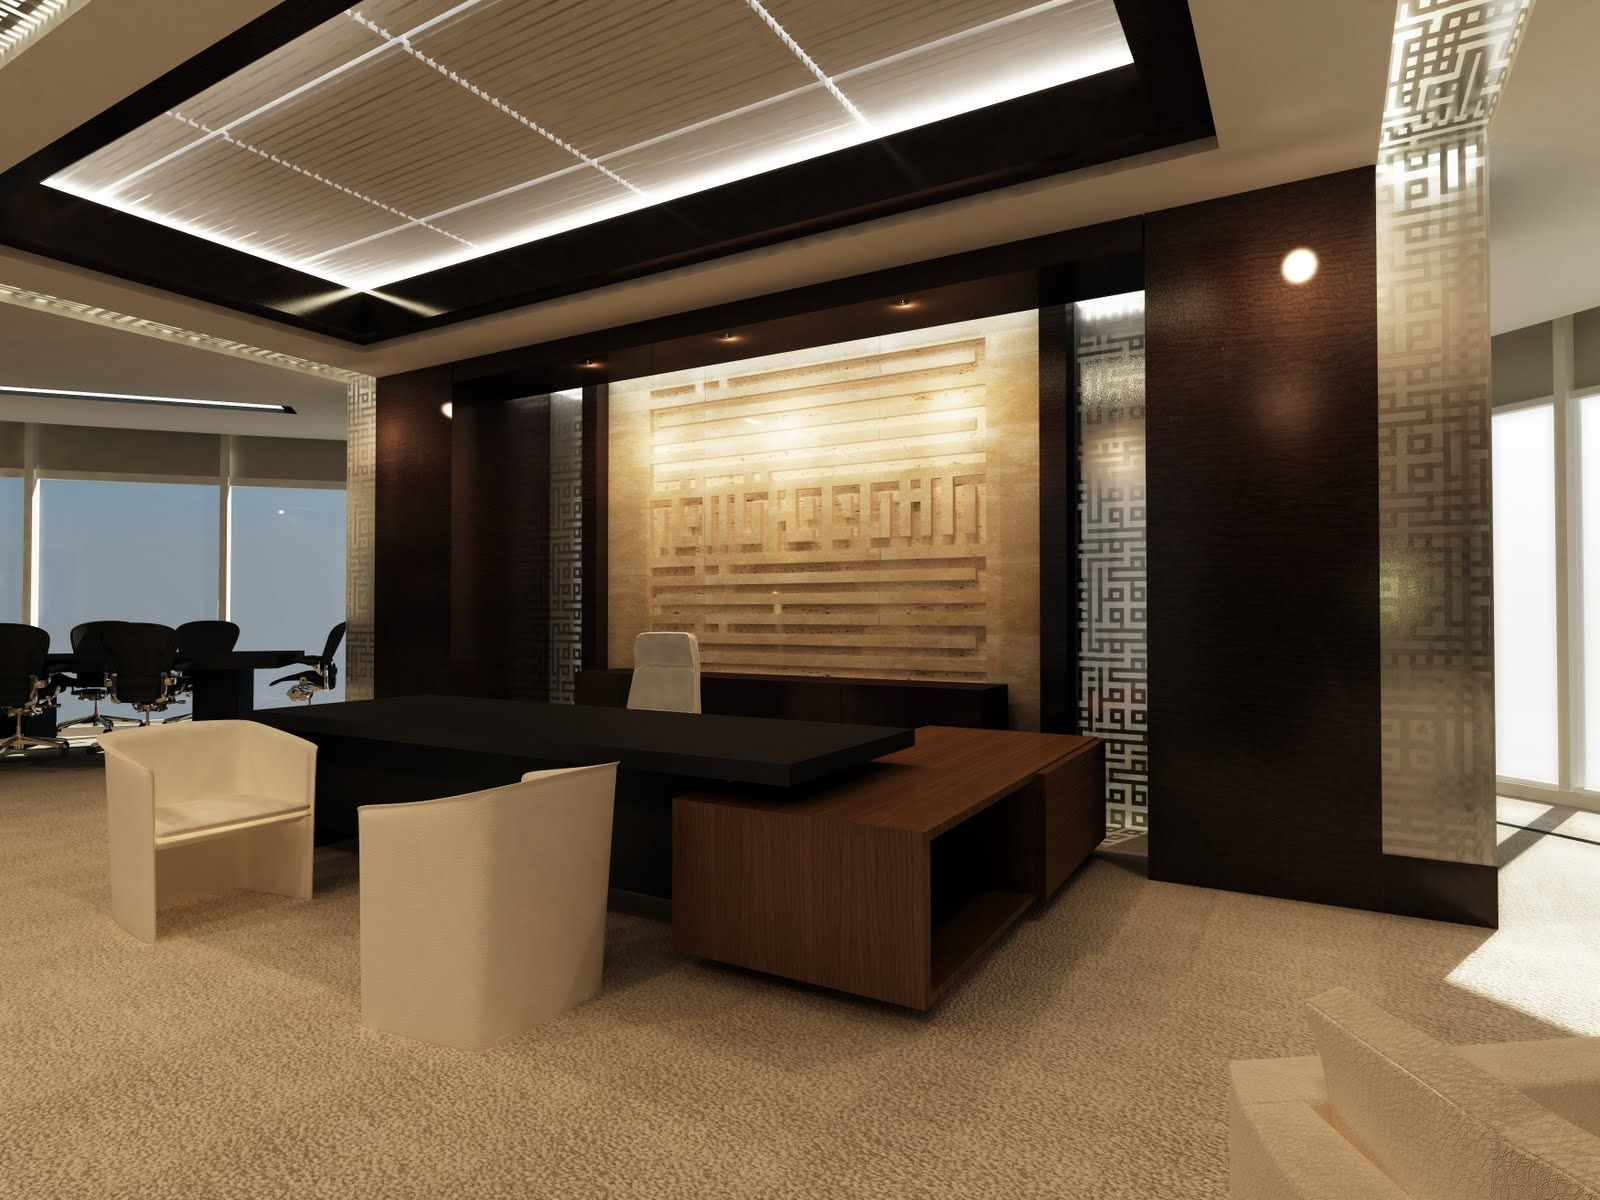 Office interior design intended for office interior design for Interior design for offices